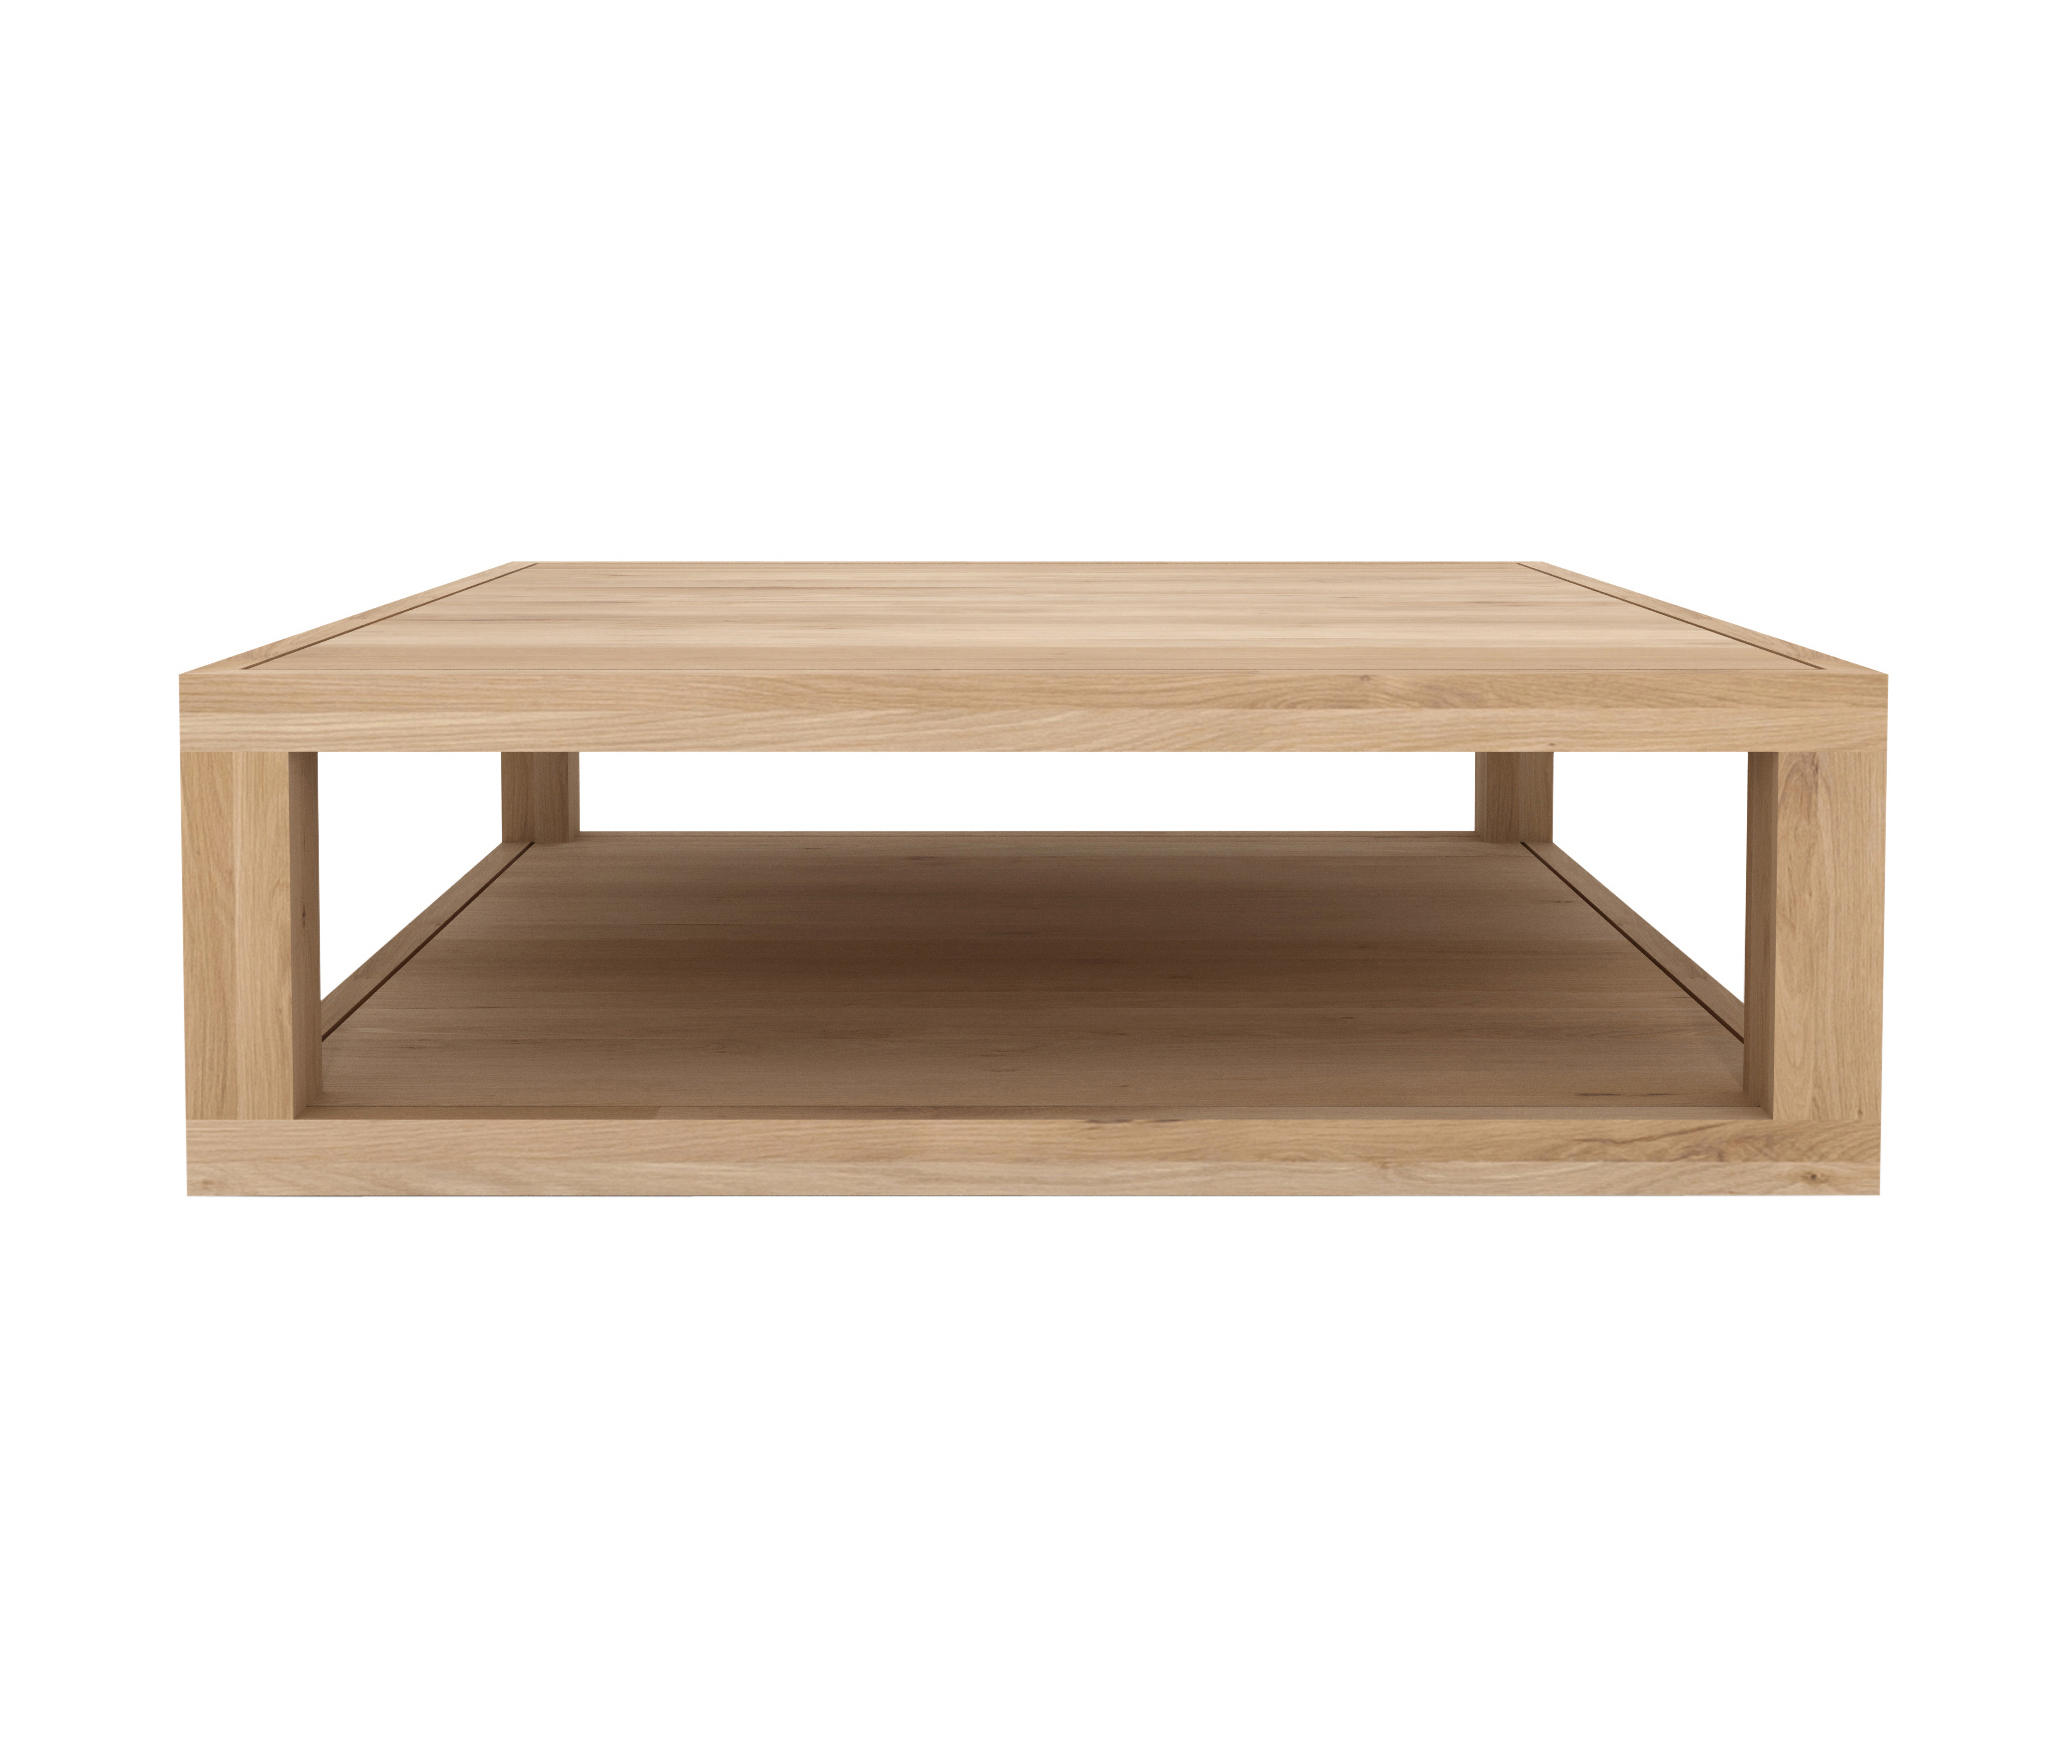 OAK DUPLEX COFFEE TABLE Lounge tables from Ethnicraft